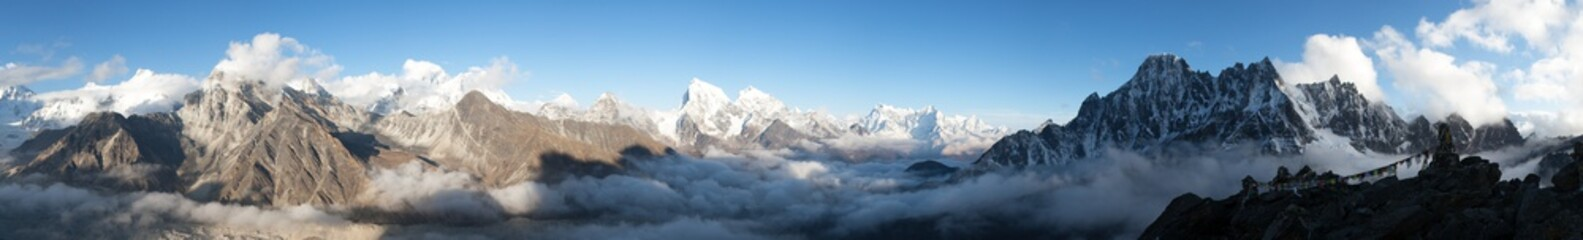 panorama of Mount Everest, Lhotse, Makalu and Cho Oyu